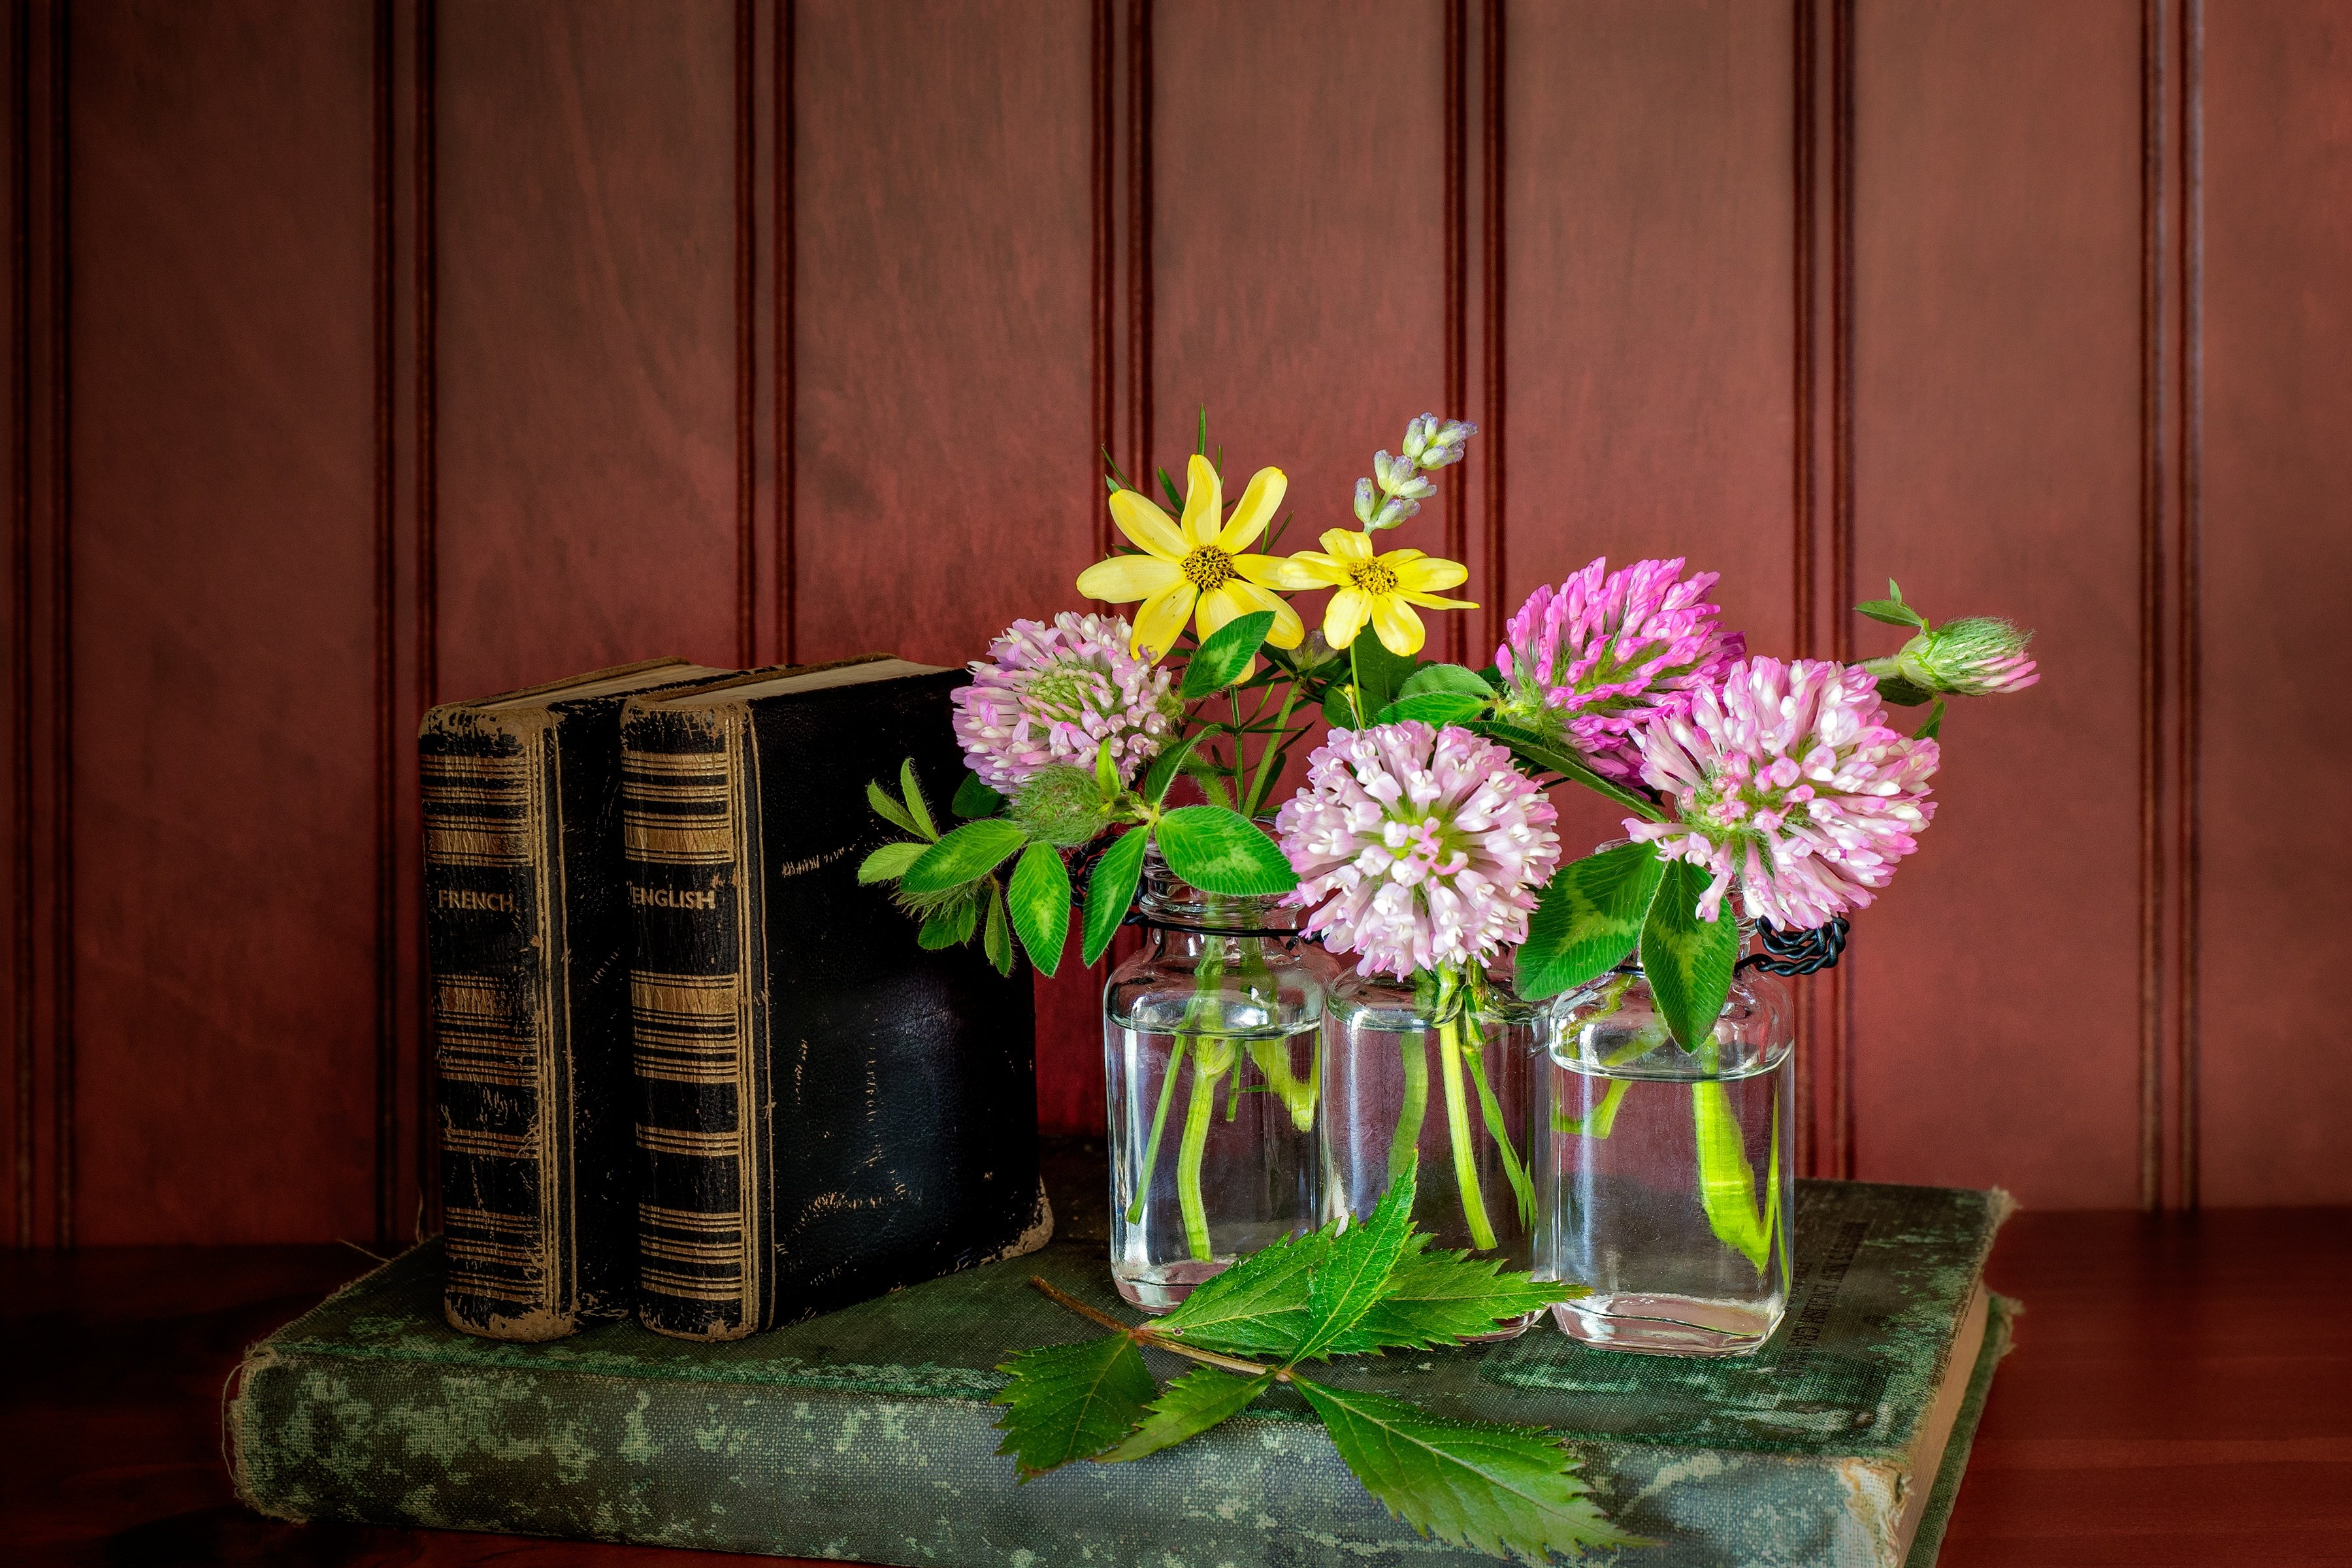 BOOKS AND BLOOMS - I thank my wife for this pleasant little arrangement of books and wild flowers.